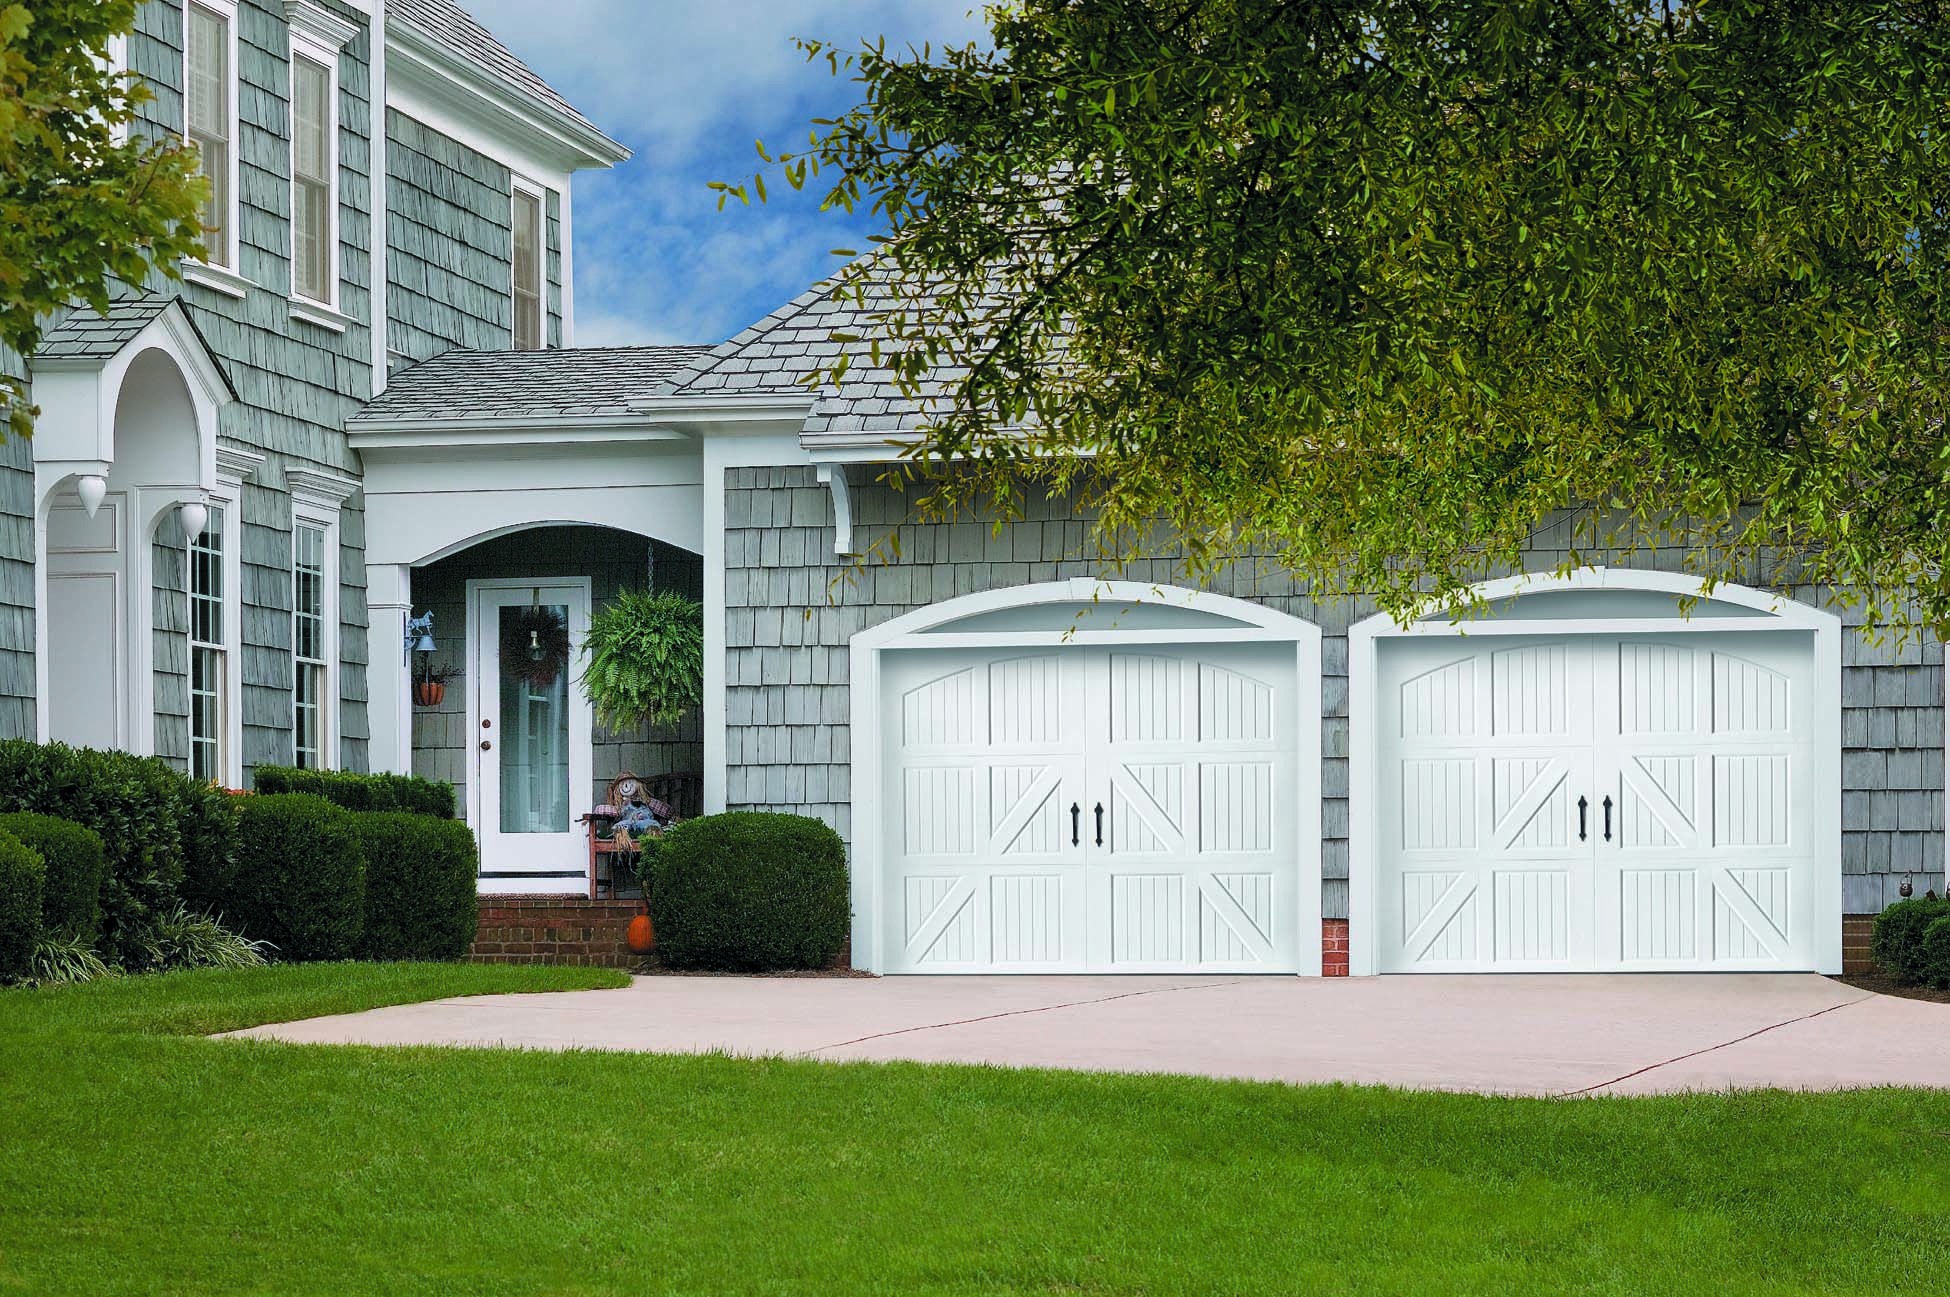 Amarr classica garage doors - Amarr Classica Lucern Garage Door With A Closed Arch Top Section In True White With